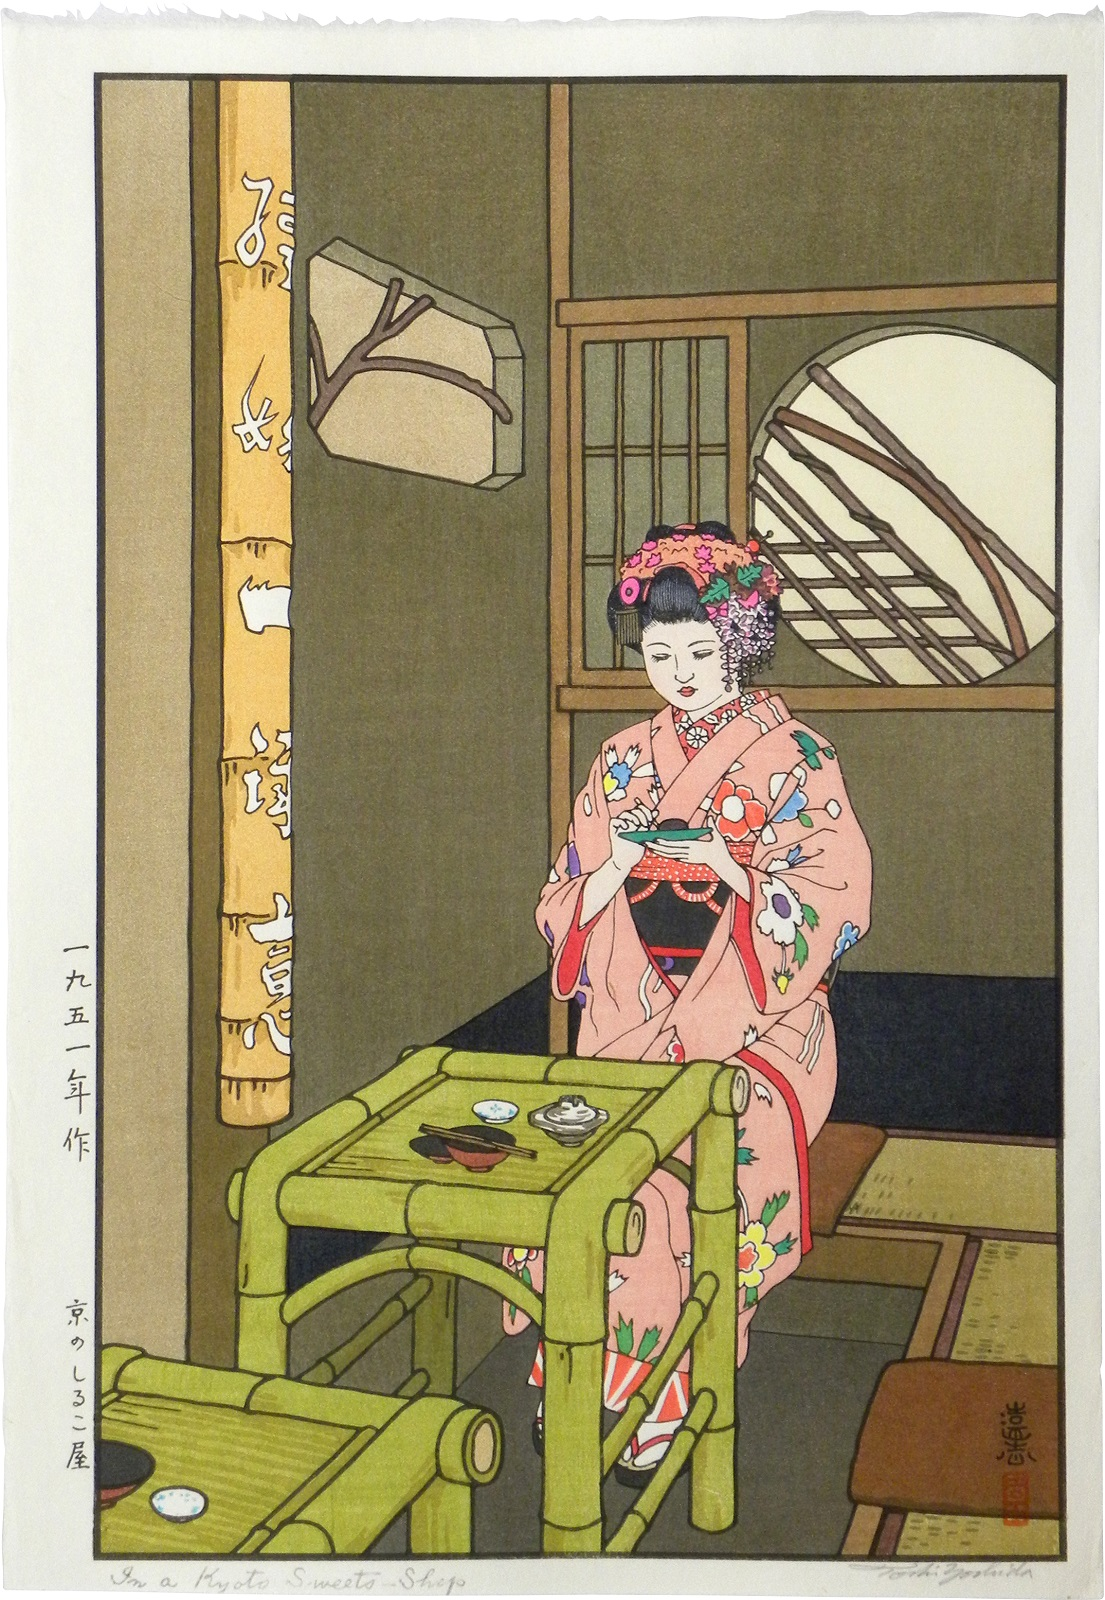 In a Kyoto Sweets-Shop by Toshi Yoshida